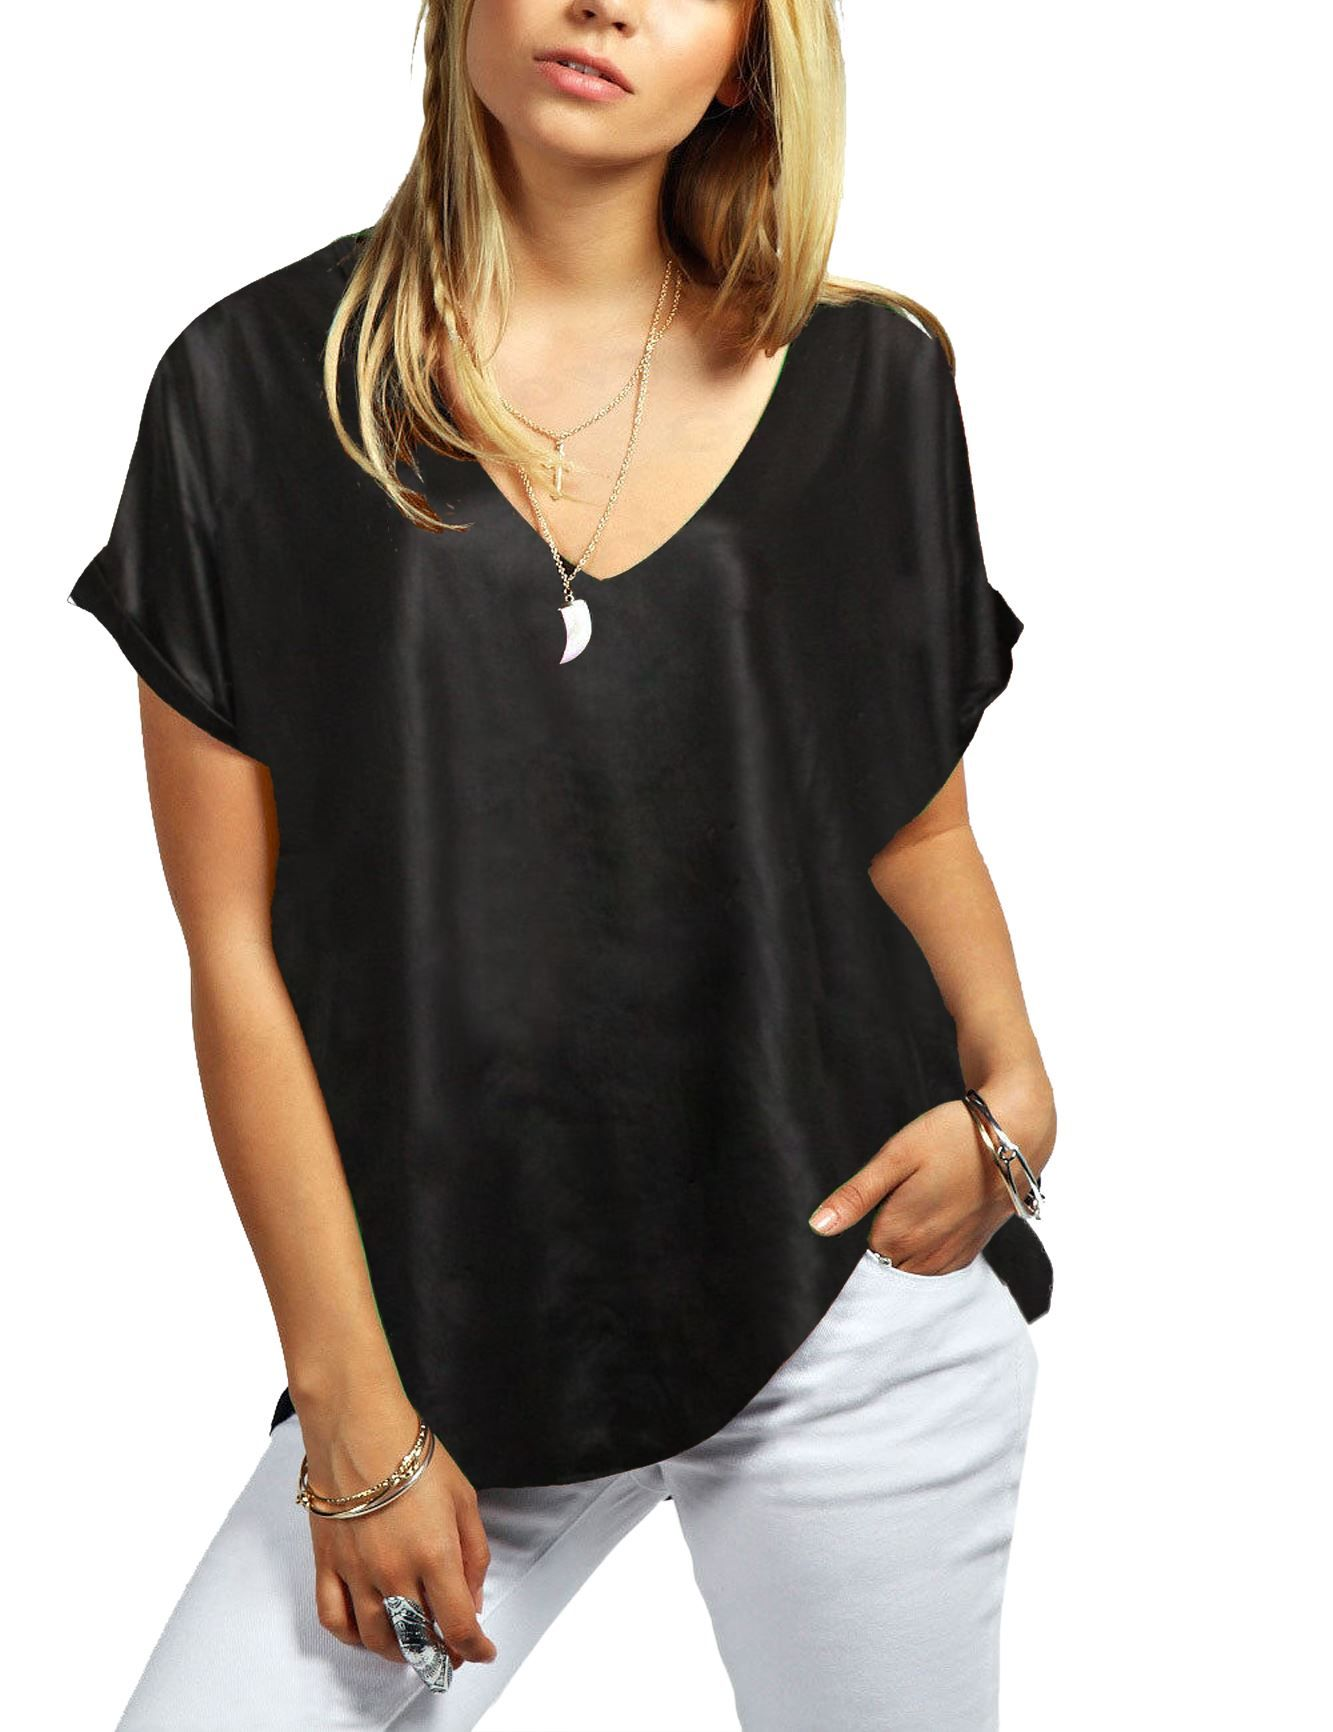 874e80e48fd New Ladies Printed Plain Turn Up Short Sleeve Baggy Loose Fit V Neck T-Shirt